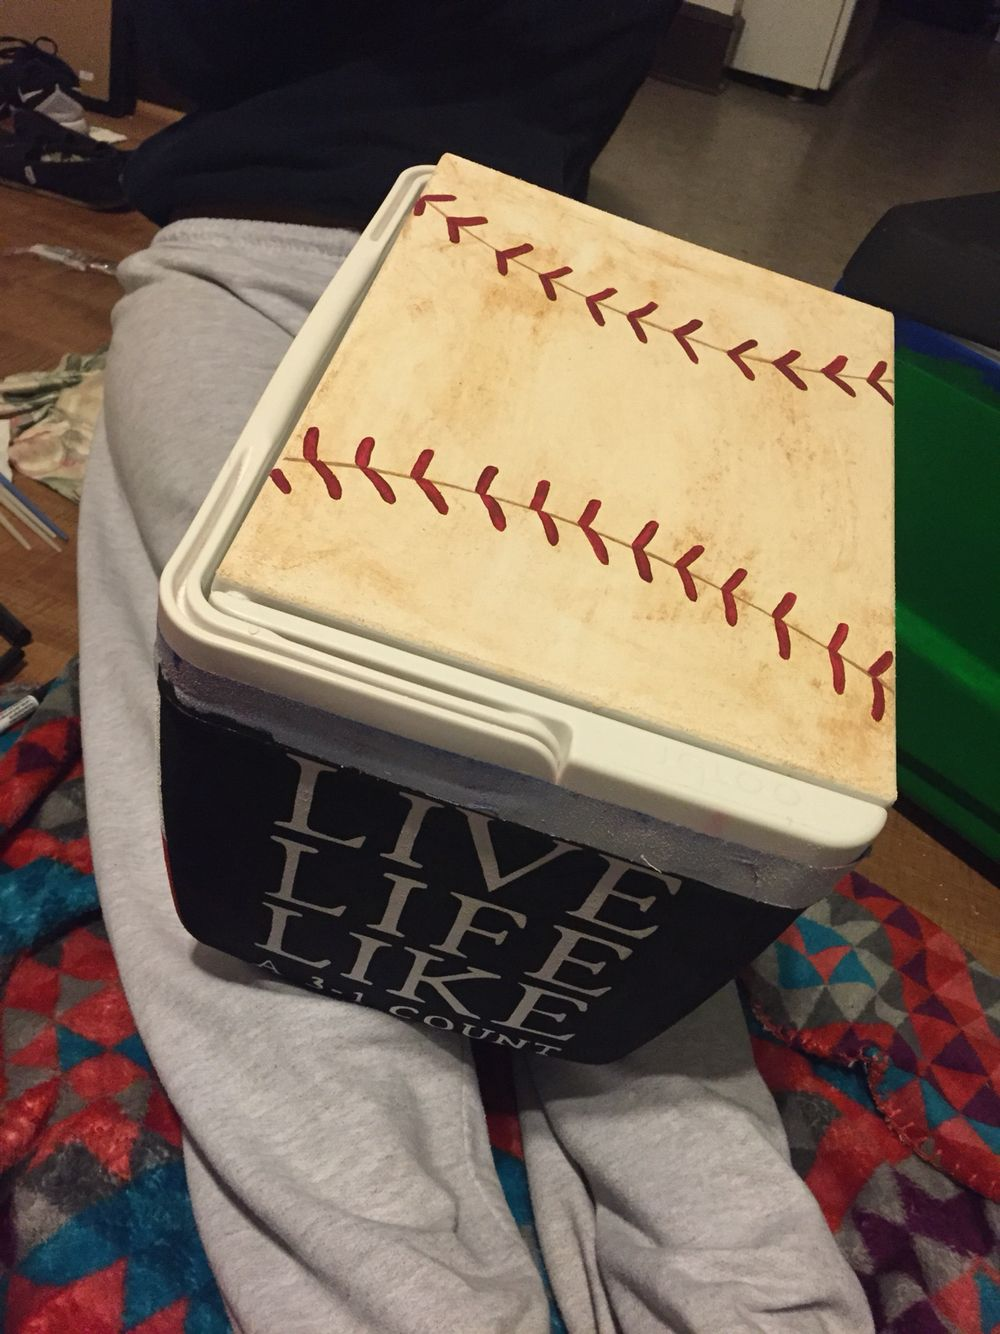 Baseball Theme Painted Cooler Cooler Painting Formal Cooler Ideas Fraternity Coolers